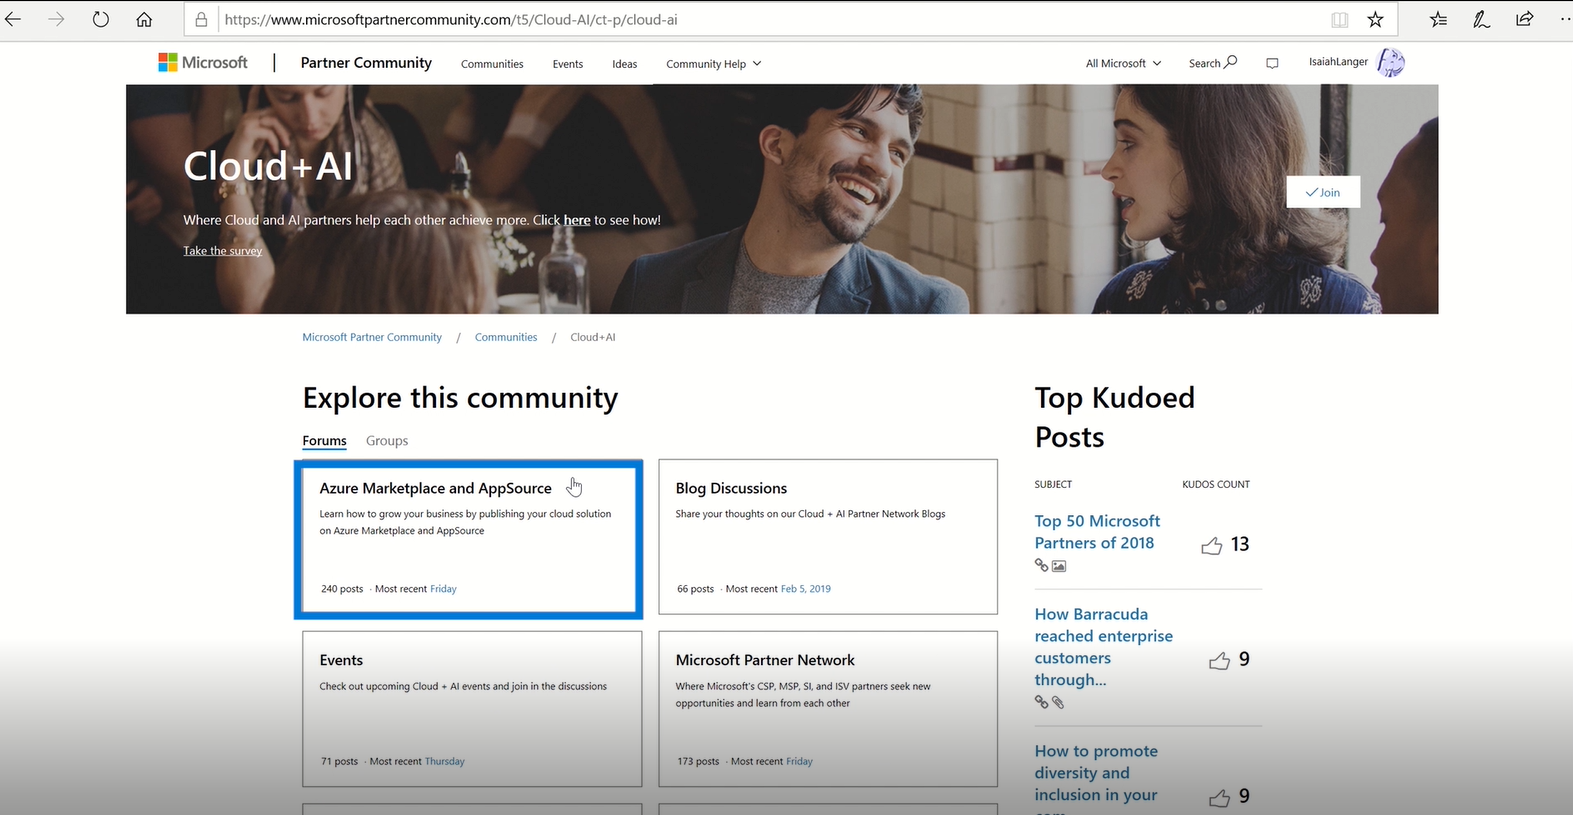 Marketplace Tutorial: Subscribe to the Azure Marketplace and AppSource Community